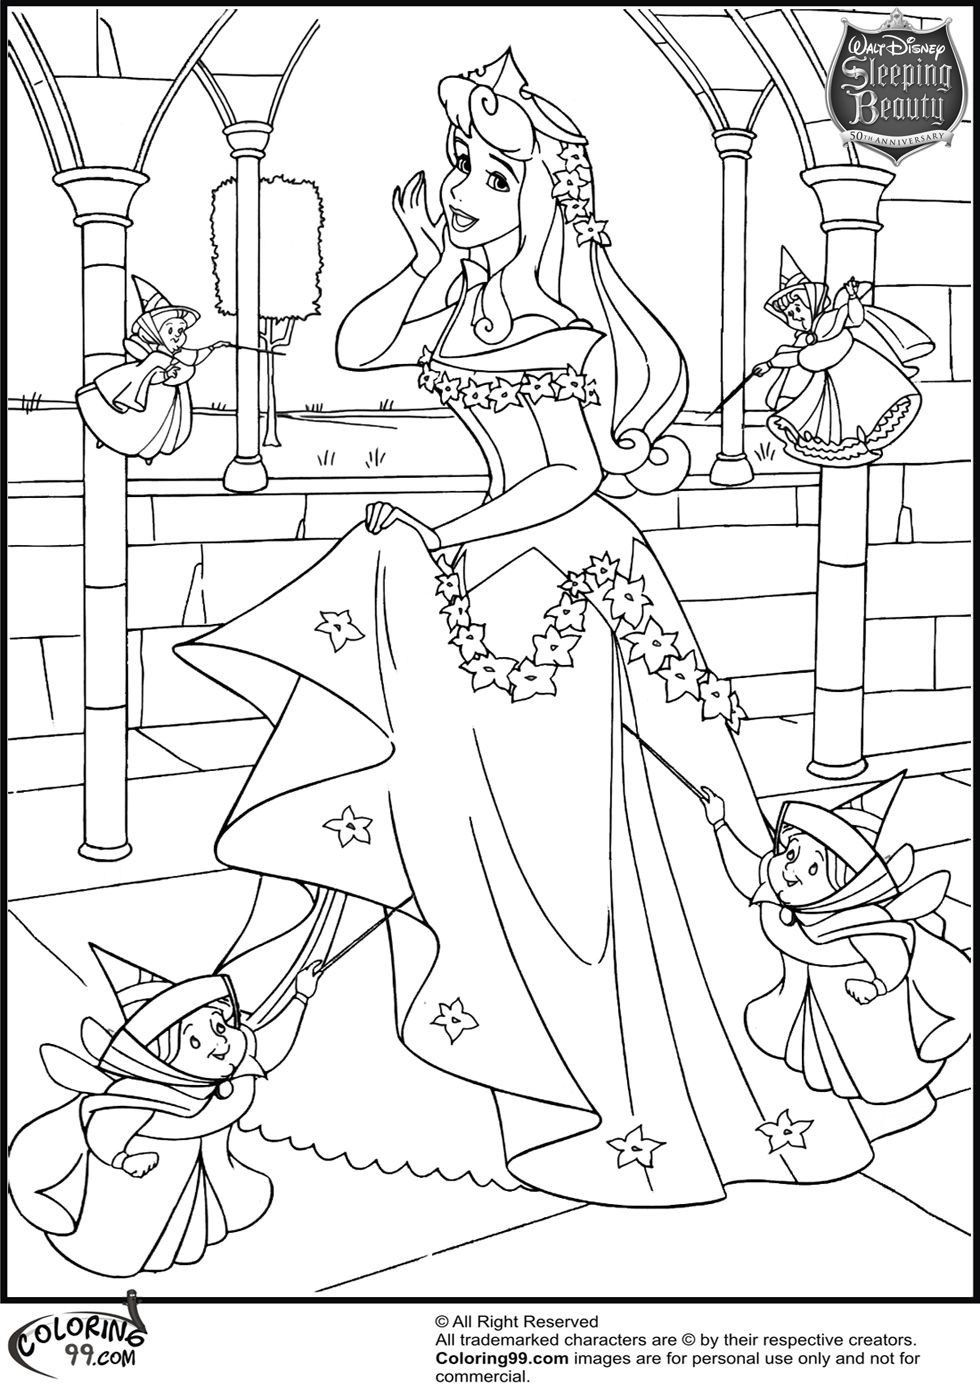 24 Inspired Picture Of Aurora Coloring Pages Davemelillo Com Princess Coloring Pages Sleeping Beauty Coloring Pages Disney Coloring Pages